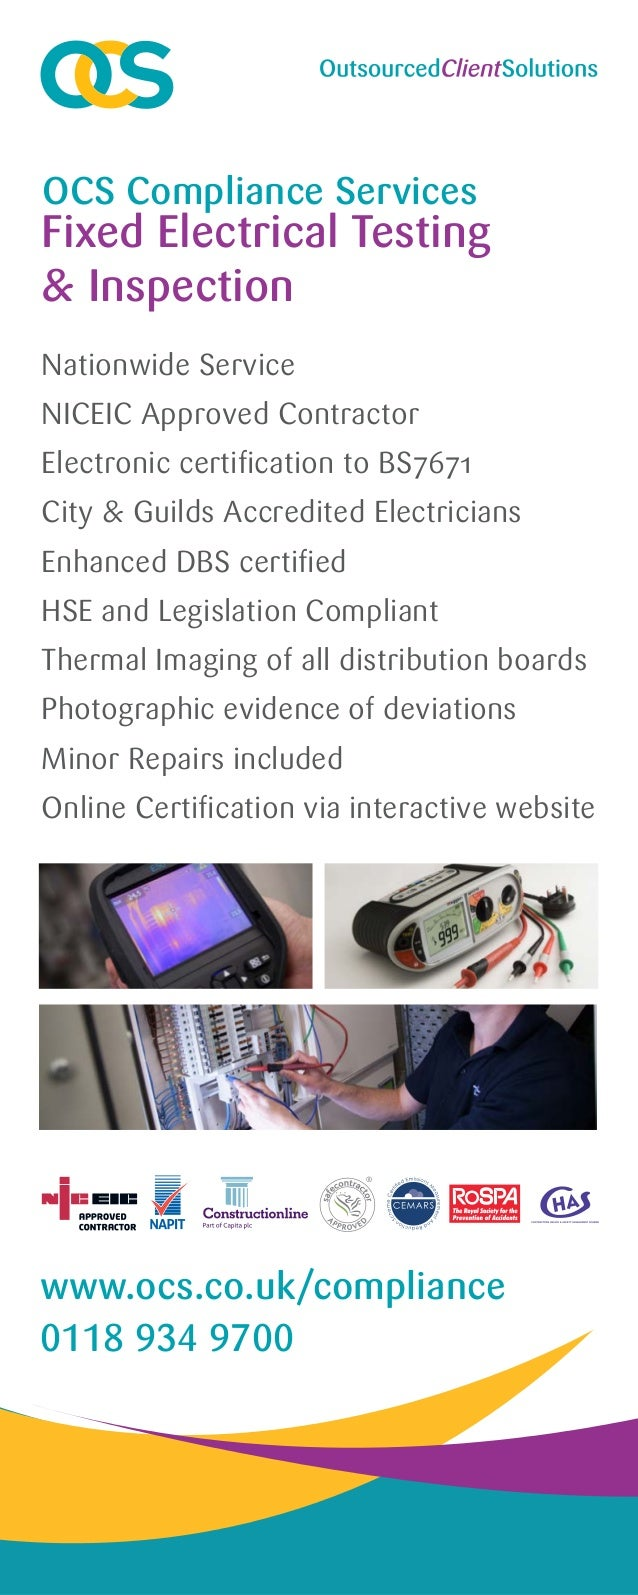 Fixed electrical testing and inspection banner nationwide service niceic approved contractor electronic certification to bs7671 city guilds accredited electricians enh xflitez Images